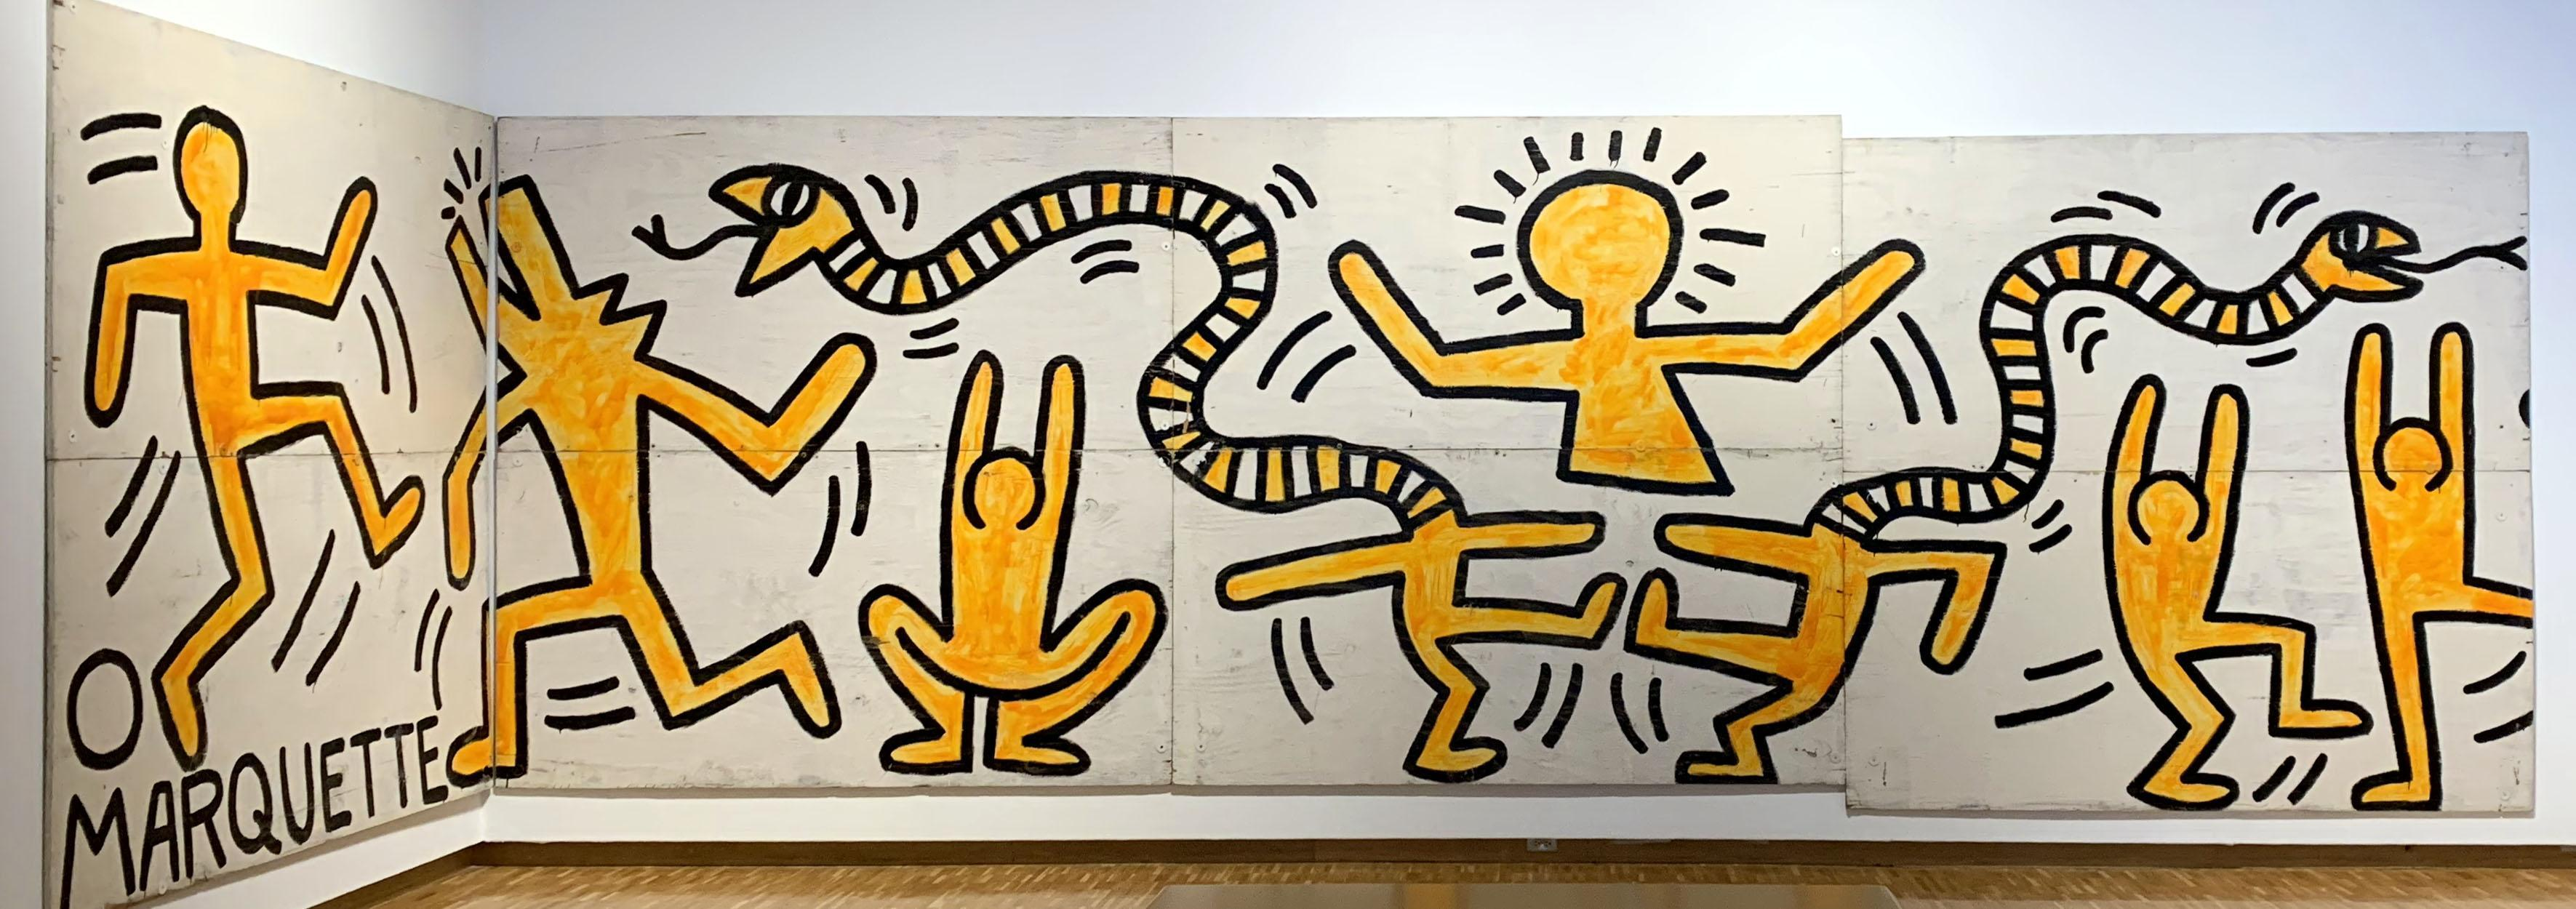 """Construction Fence"" by Keith Haring, 1983, mixed reality experience"